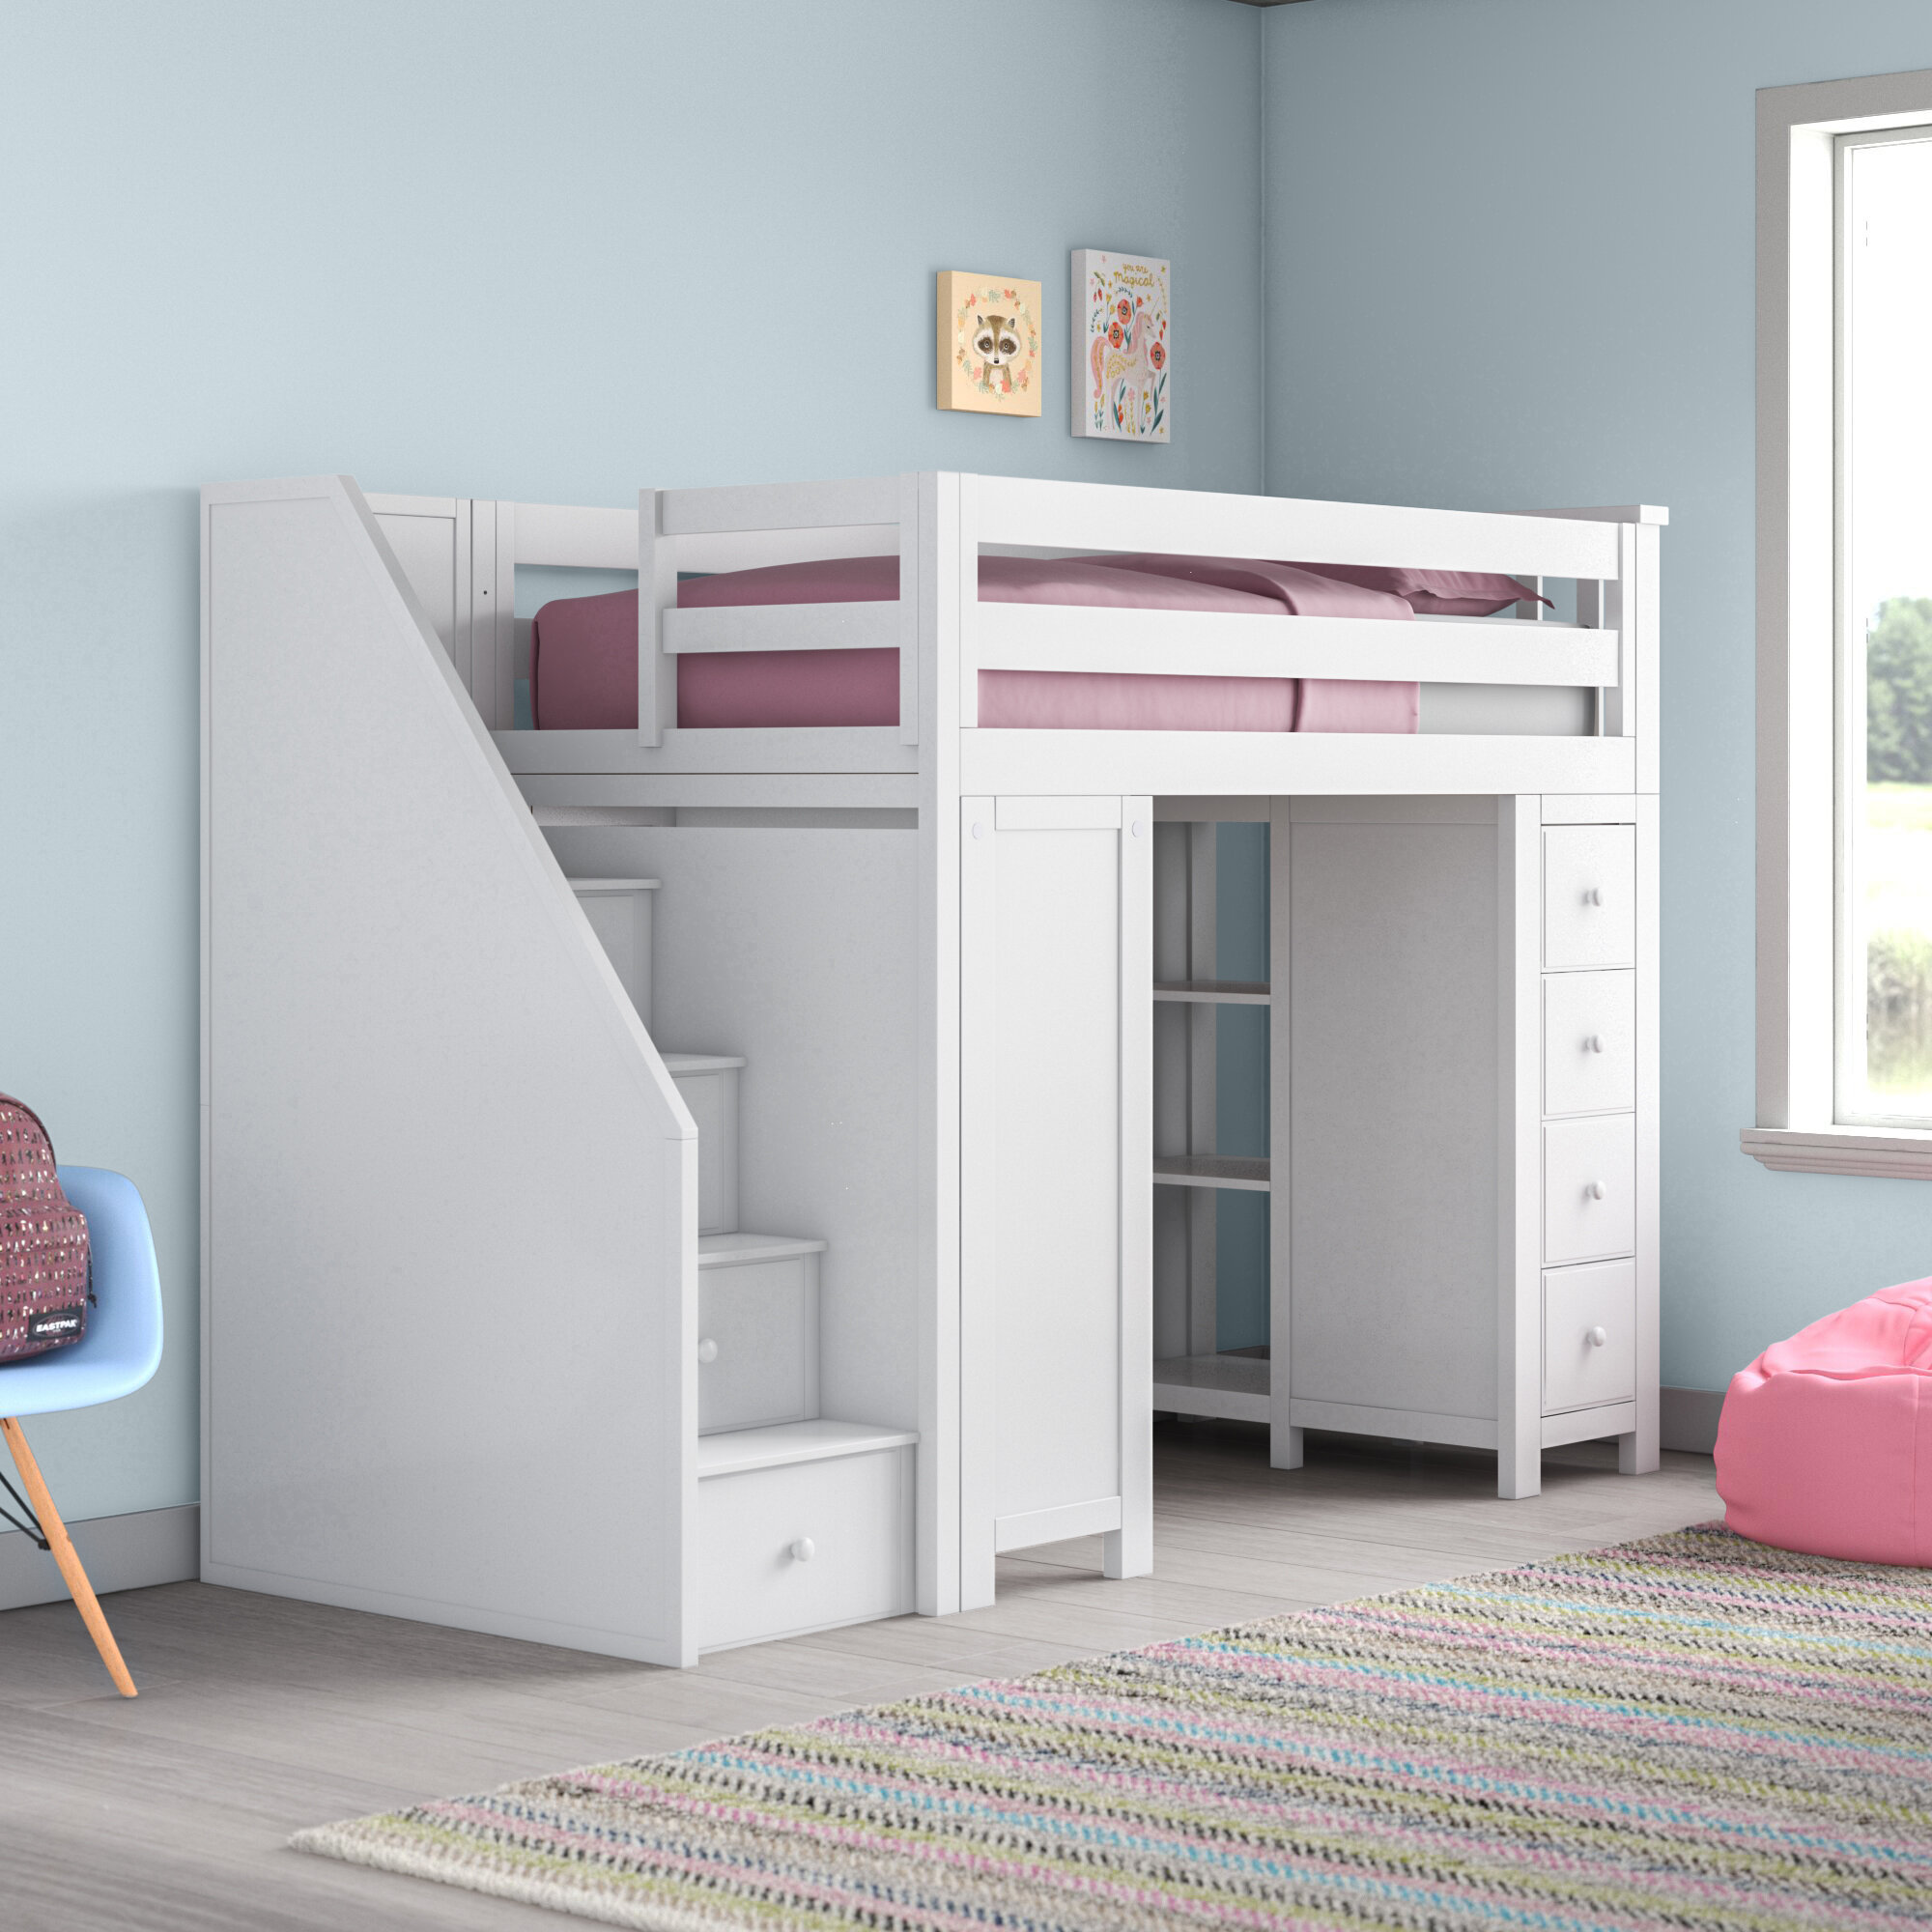 Picture of: Twin Loft Beds With Desks You Ll Love In 2020